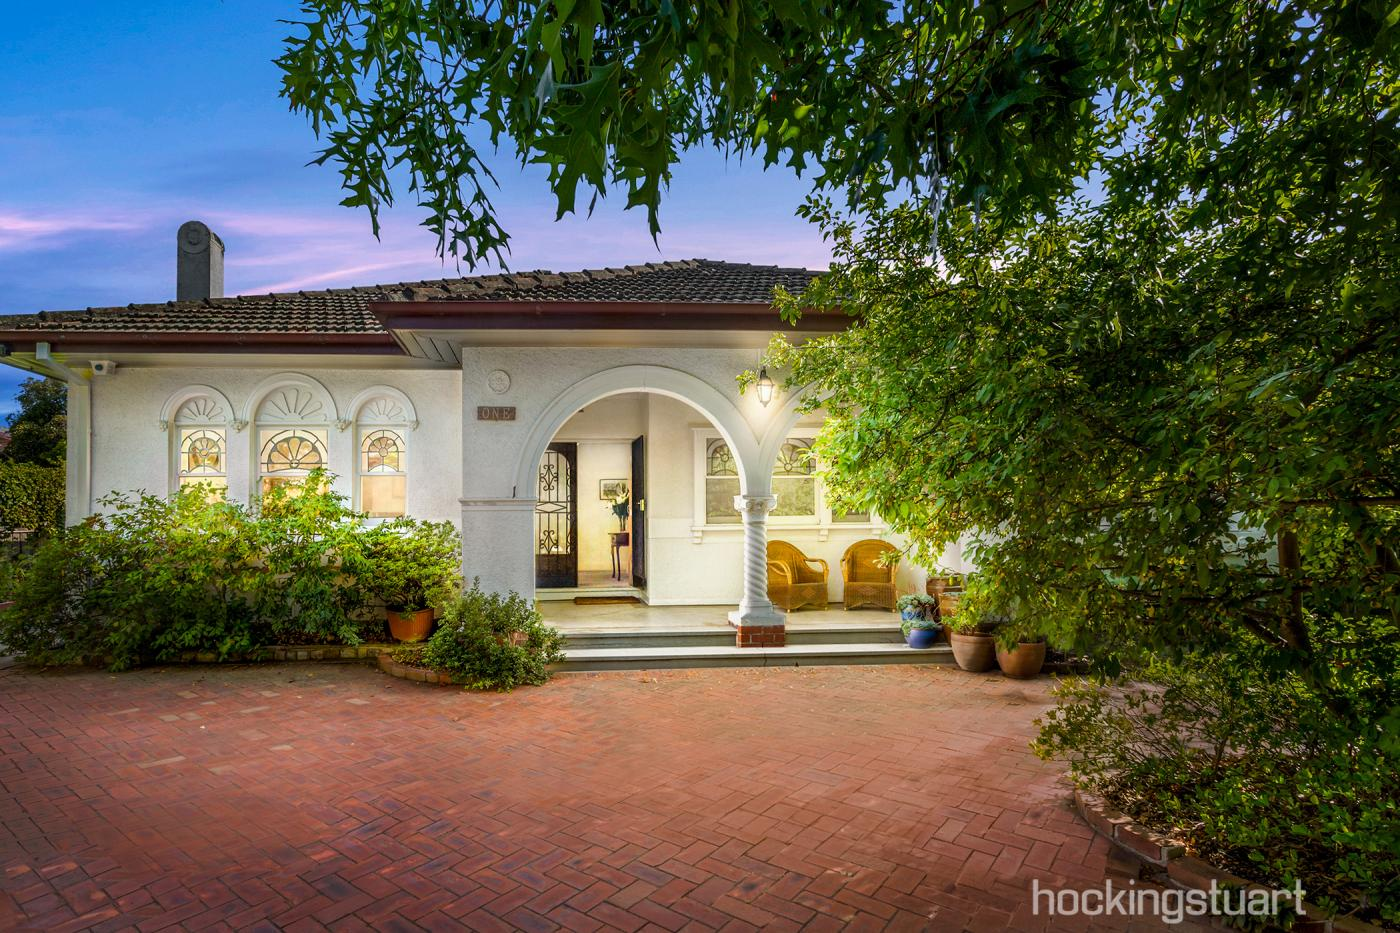 1-hunter-road-camberwell-vic-3124-real-estate-photo-1-xlarge-12449056